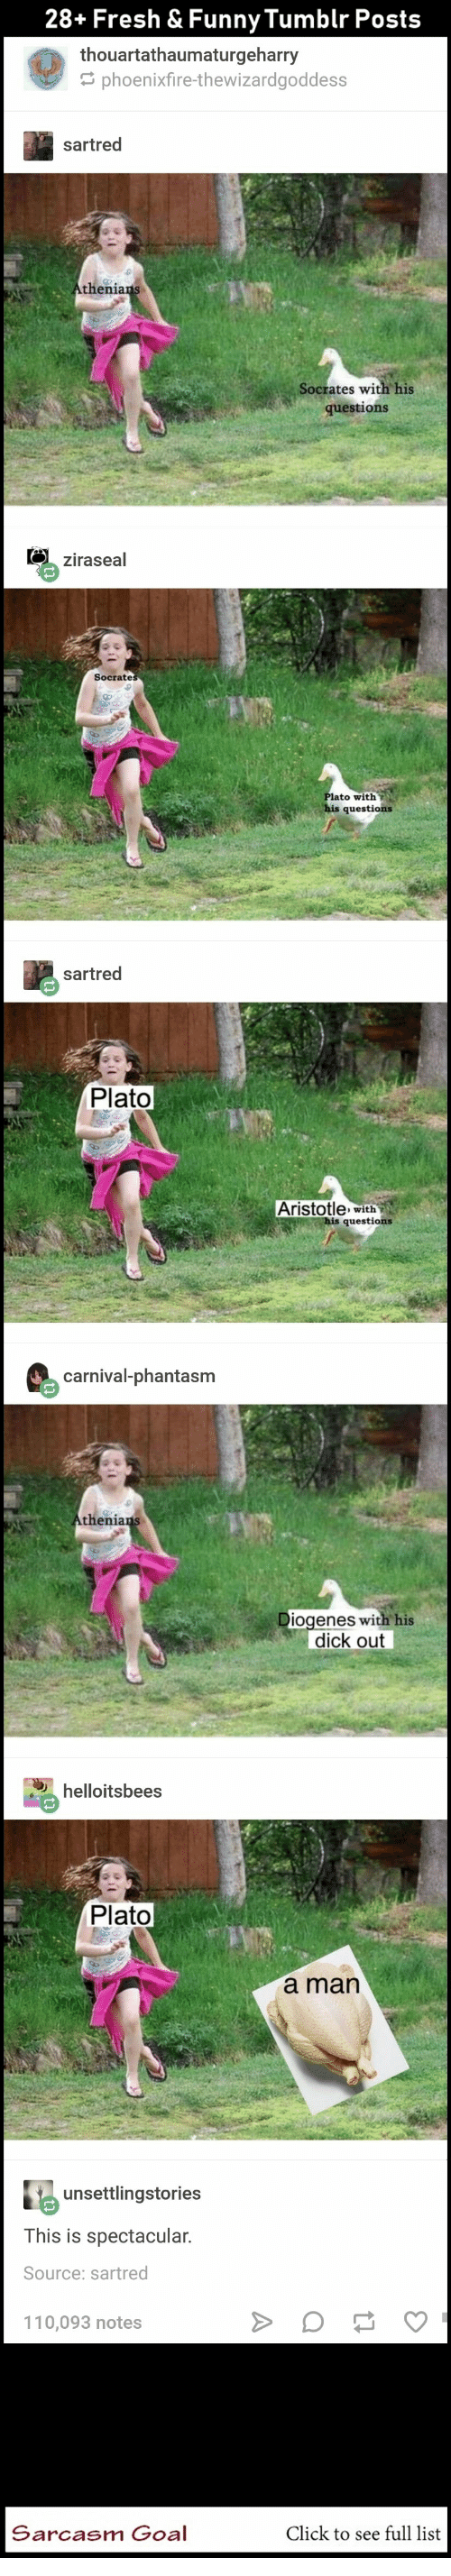 Plato: 28+ Fresh & Funny Tumblr Posts  thouartathaumaturgeharry  phoenixfire-thewizardgoddess  sartred  s with his  questions  ziraseal  with  sartred  Plato  Aristotle with  carnival-phantasm  thenia  enes with his  dick out  helloitsbees  Plato  a man  unsettlingstories  This is spectacular  Source: sartred  10,093 notes  Sarcasm Goal  Click to see full list